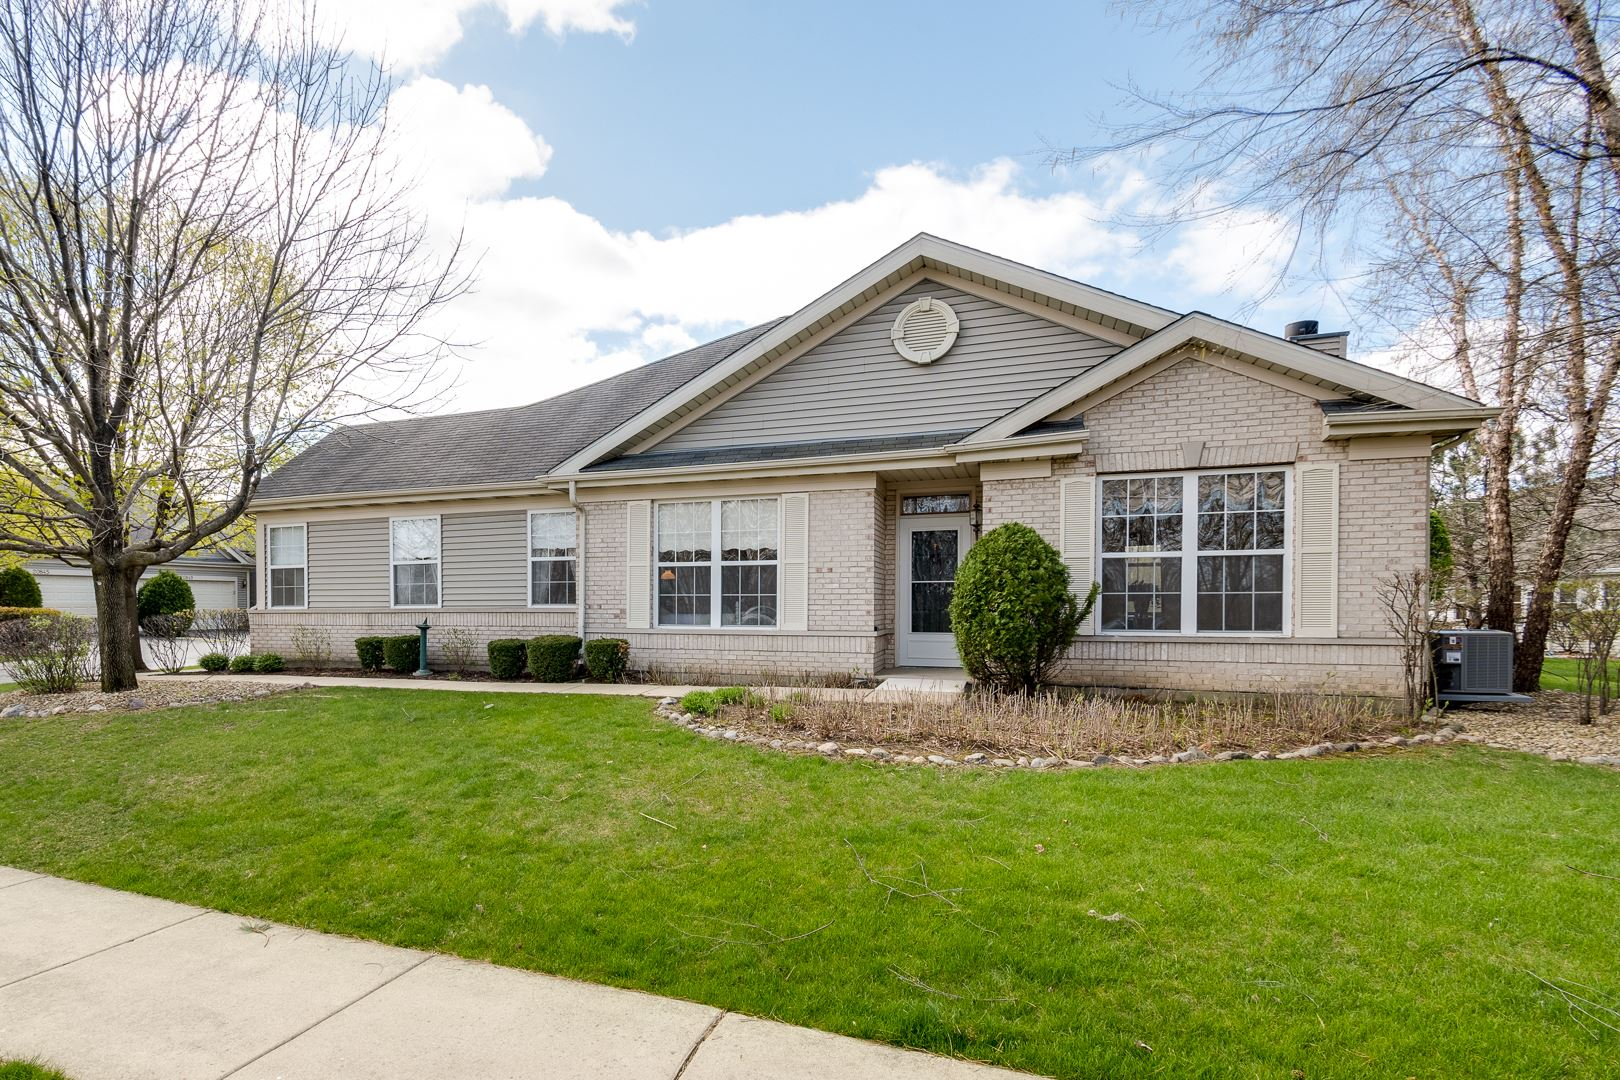 Photo of 20865 W Chinaberry Court, Plainfield, IL 60544 (MLS # 11053111)